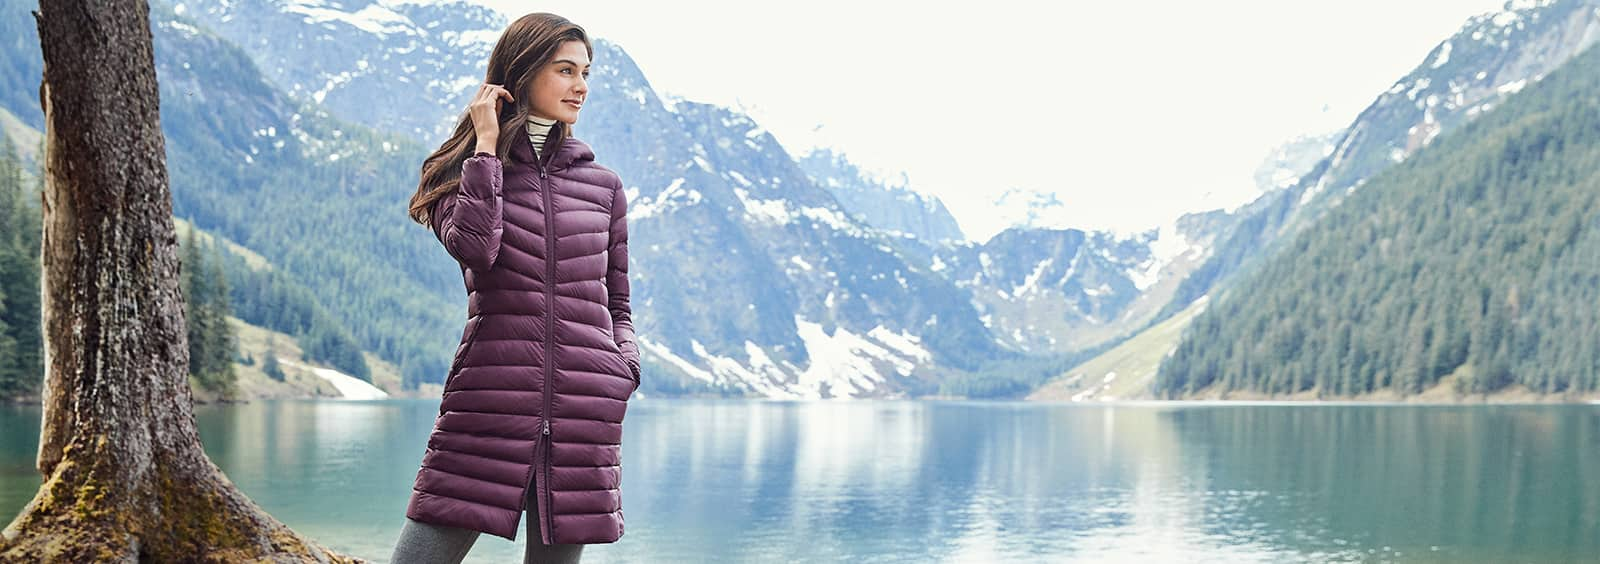 Best Women's Outerwear to Transition from Fall to Winter